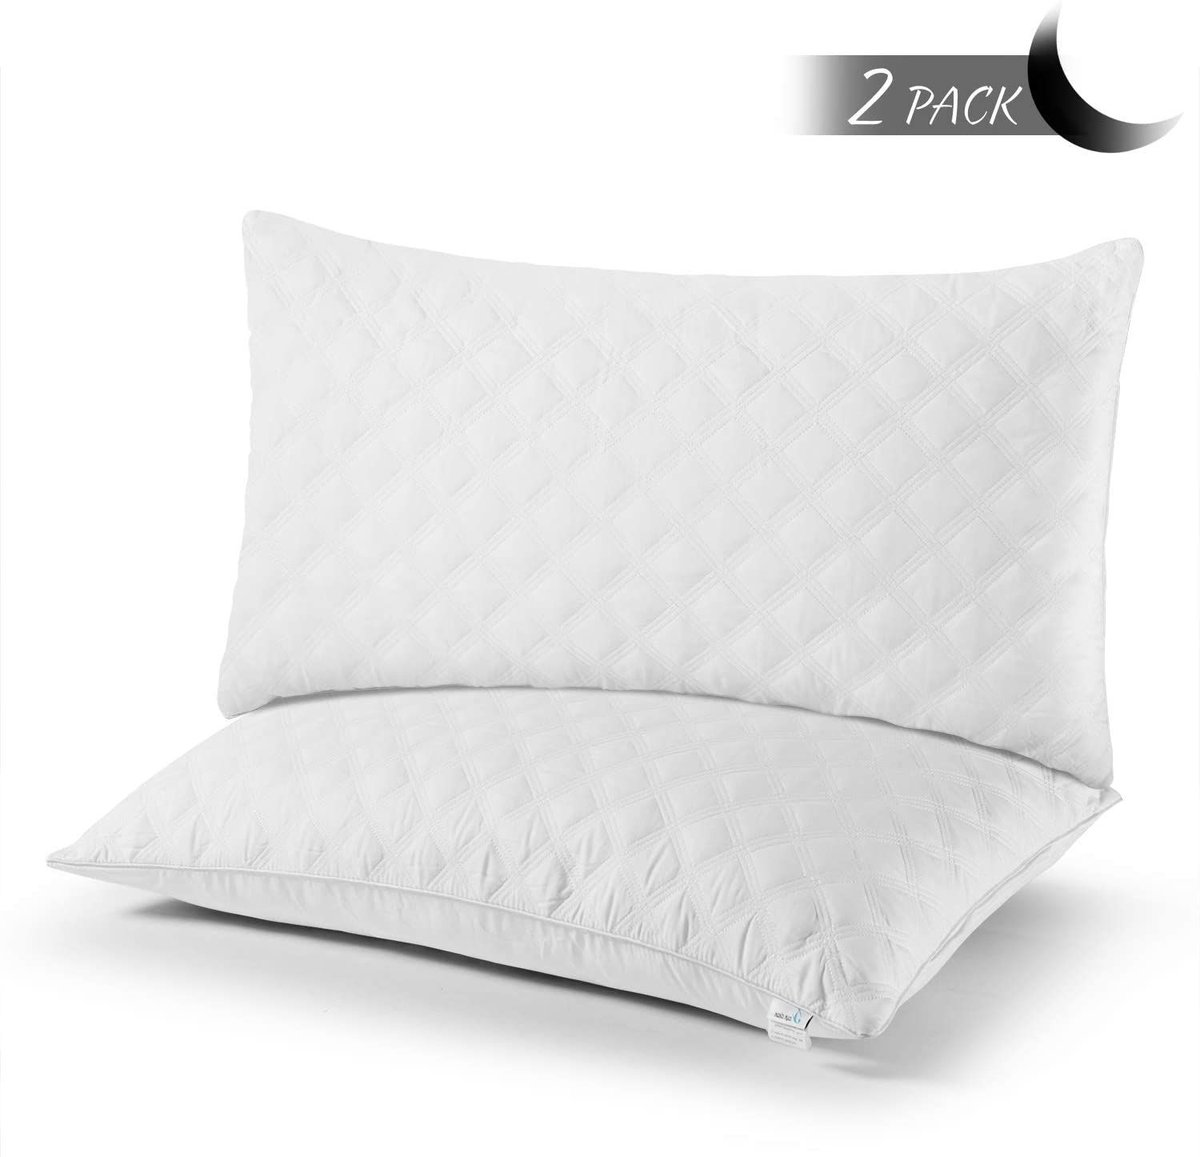 2 pack of Queen Pillows, $23.99!  Use promo code; 50ZC76ML  2